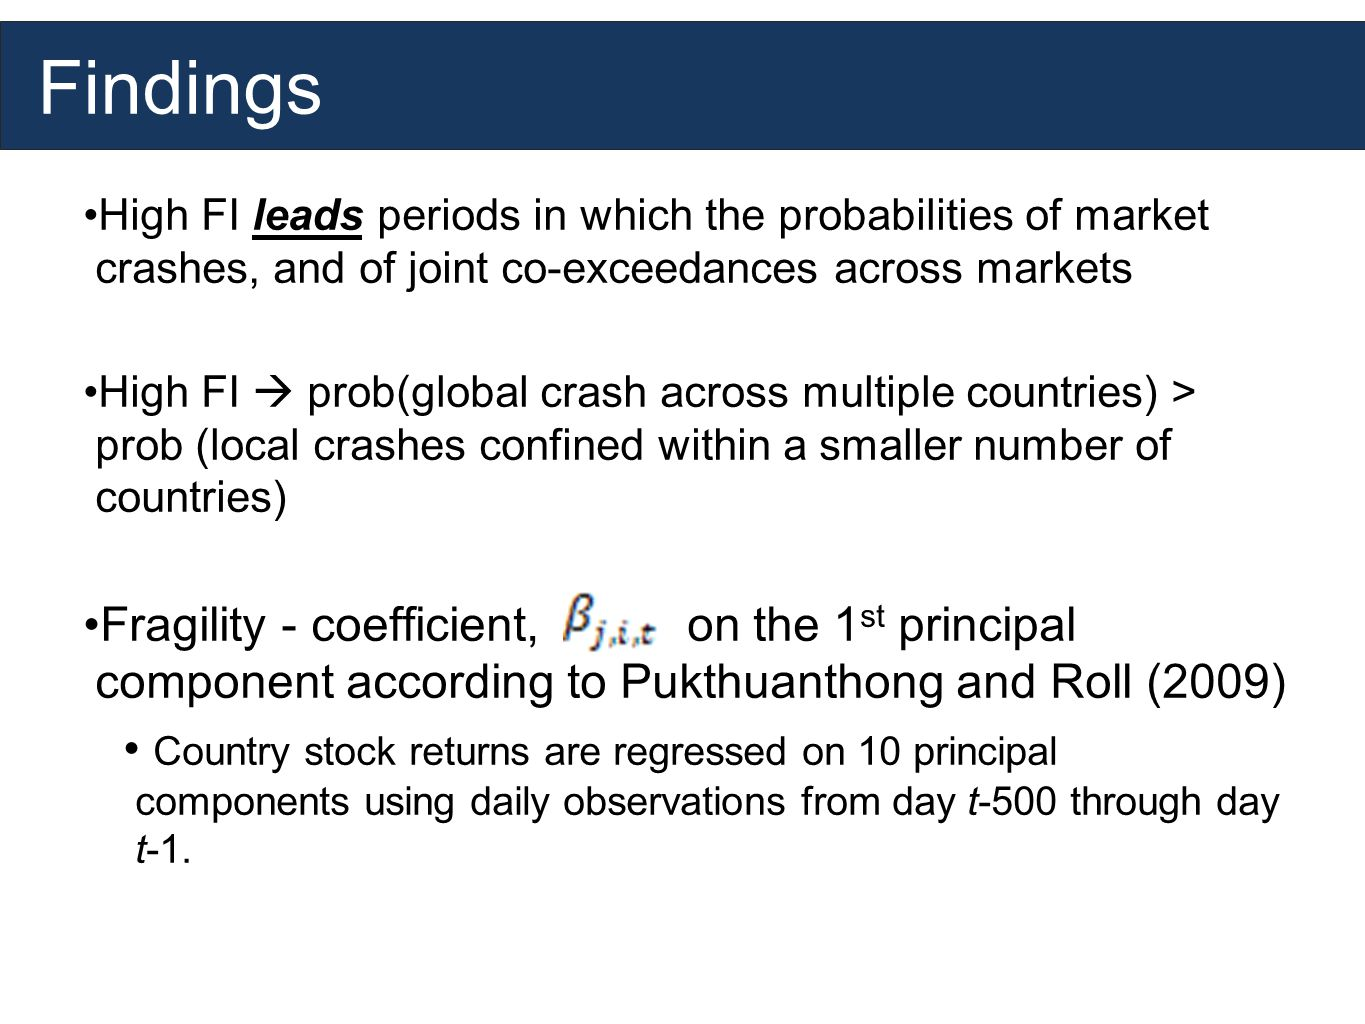 Findings High FI leads periods in which the probabilities of market crashes, and of joint co-exceedances across markets High FI prob(global crash across multiple countries) > prob (local crashes confined within a smaller number of countries) Fragility - coefficient, on the 1 st principal component according to Pukthuanthong and Roll (2009) Country stock returns are regressed on 10 principal components using daily observations from day t-500 through day t-1.